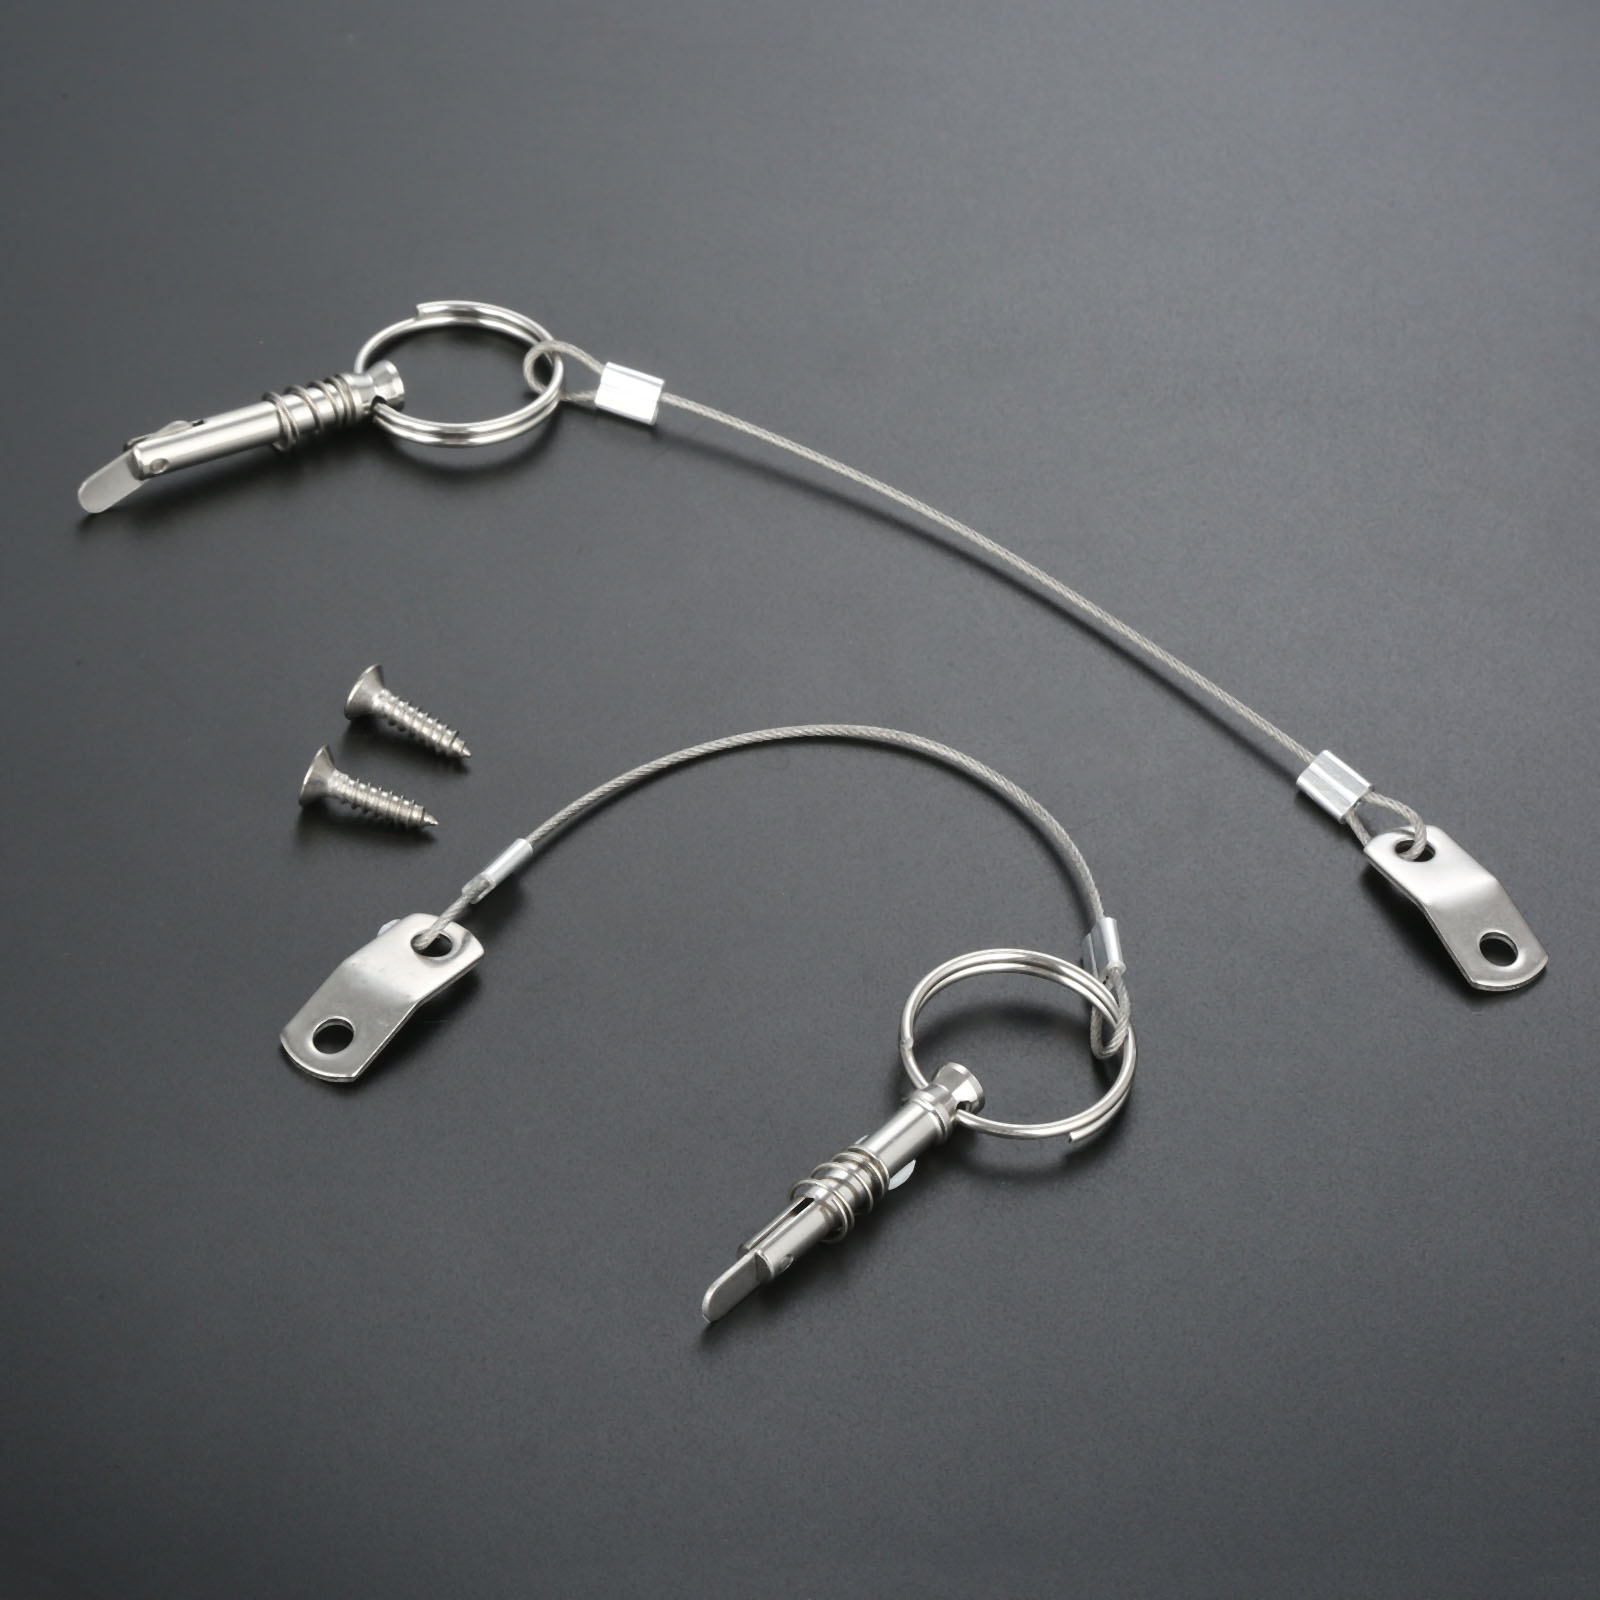 2 x Quick Release Pin with Lanyard Deck Hinge Boat Lanyard Ship Building Parts